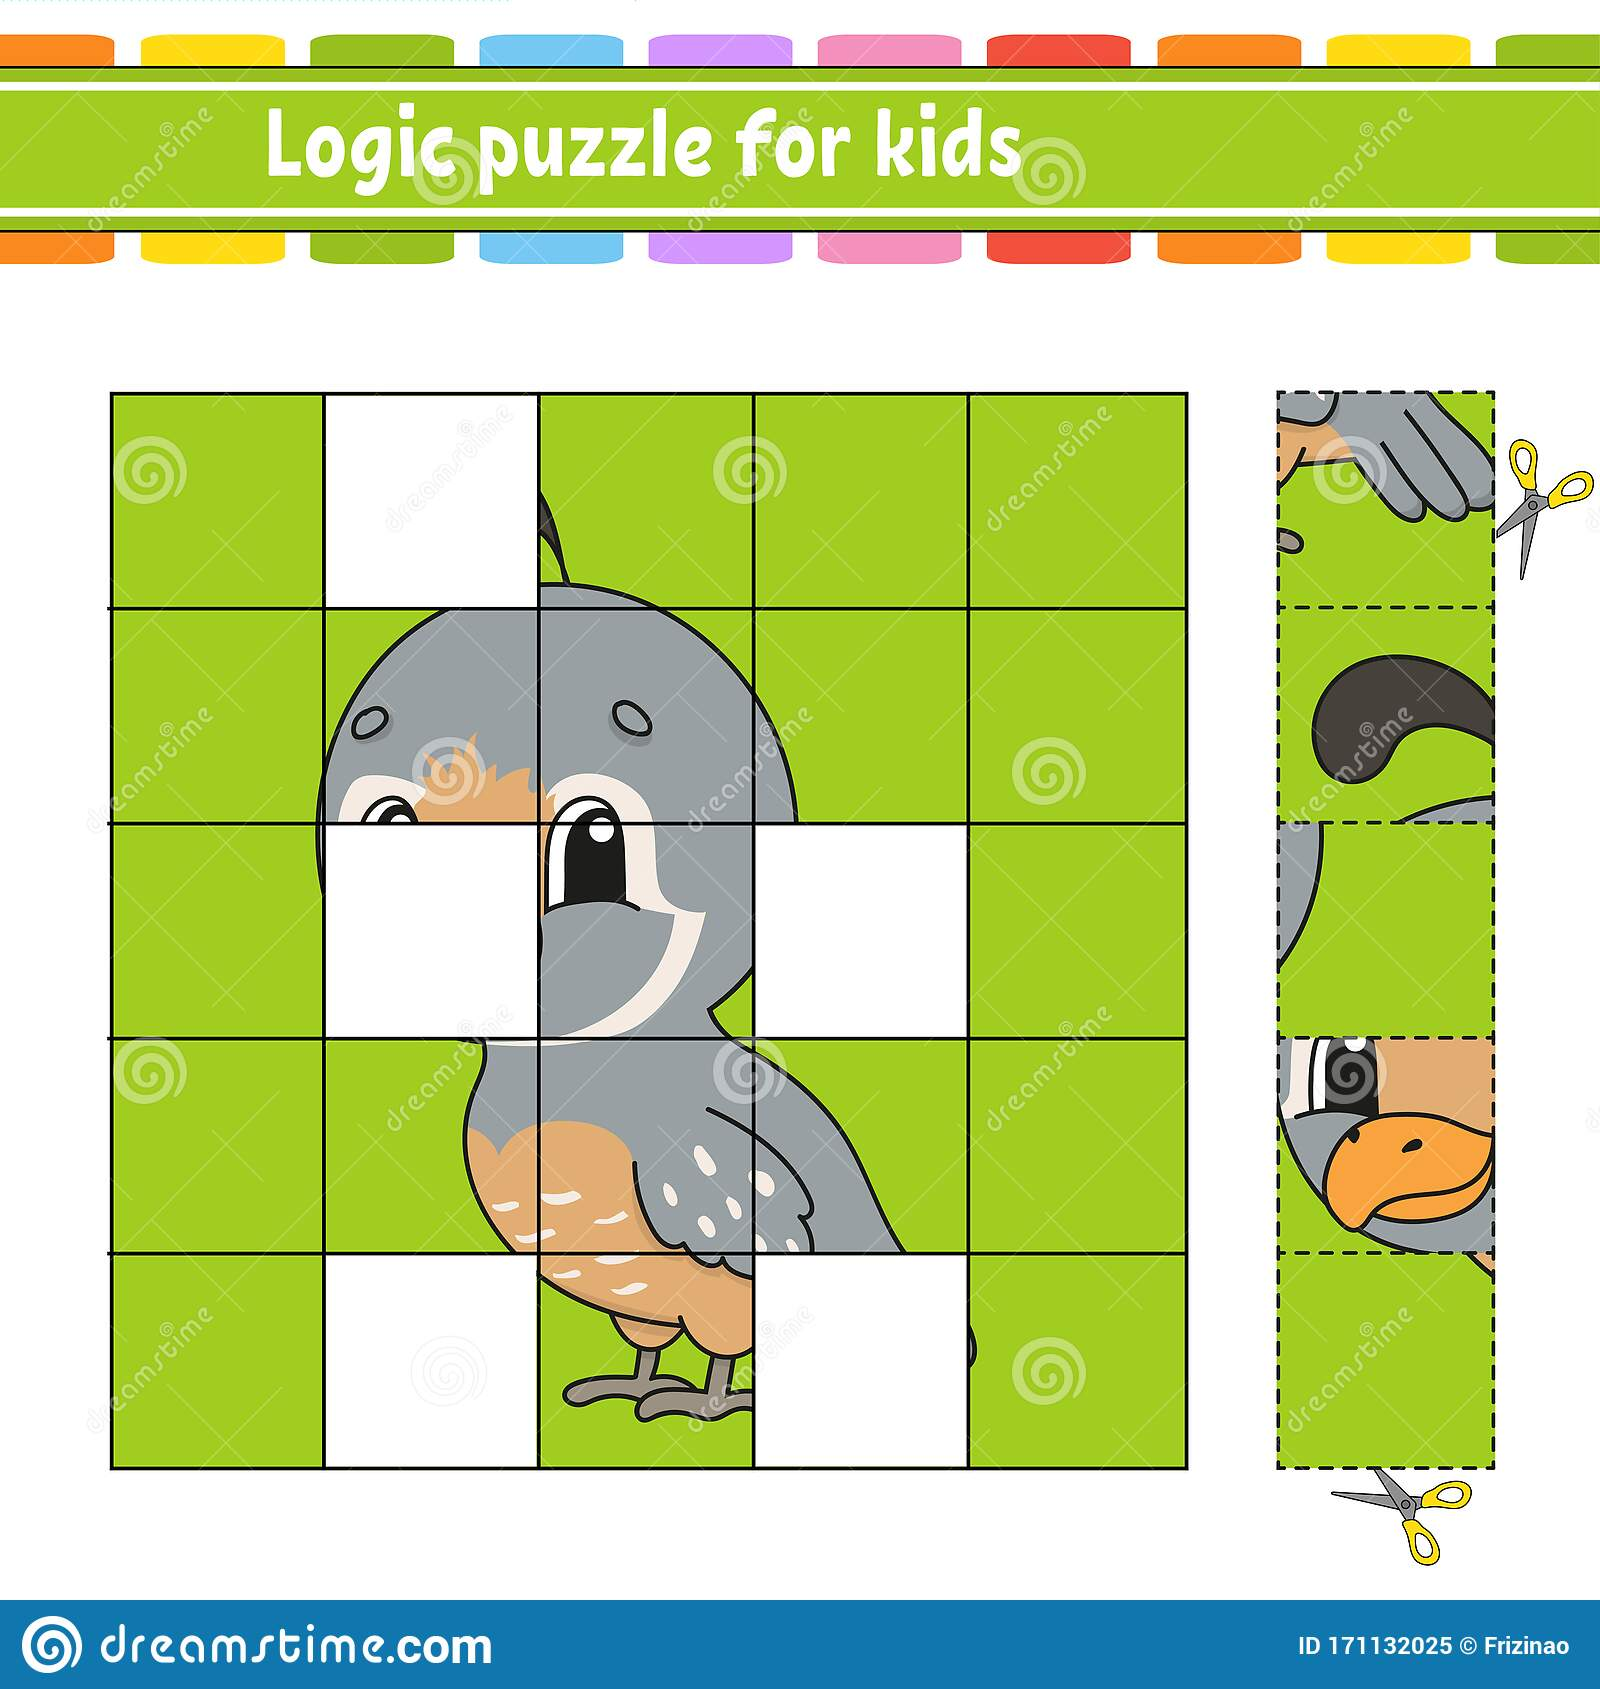 Logic Puzzle For Kids Quail Bird Education Developing